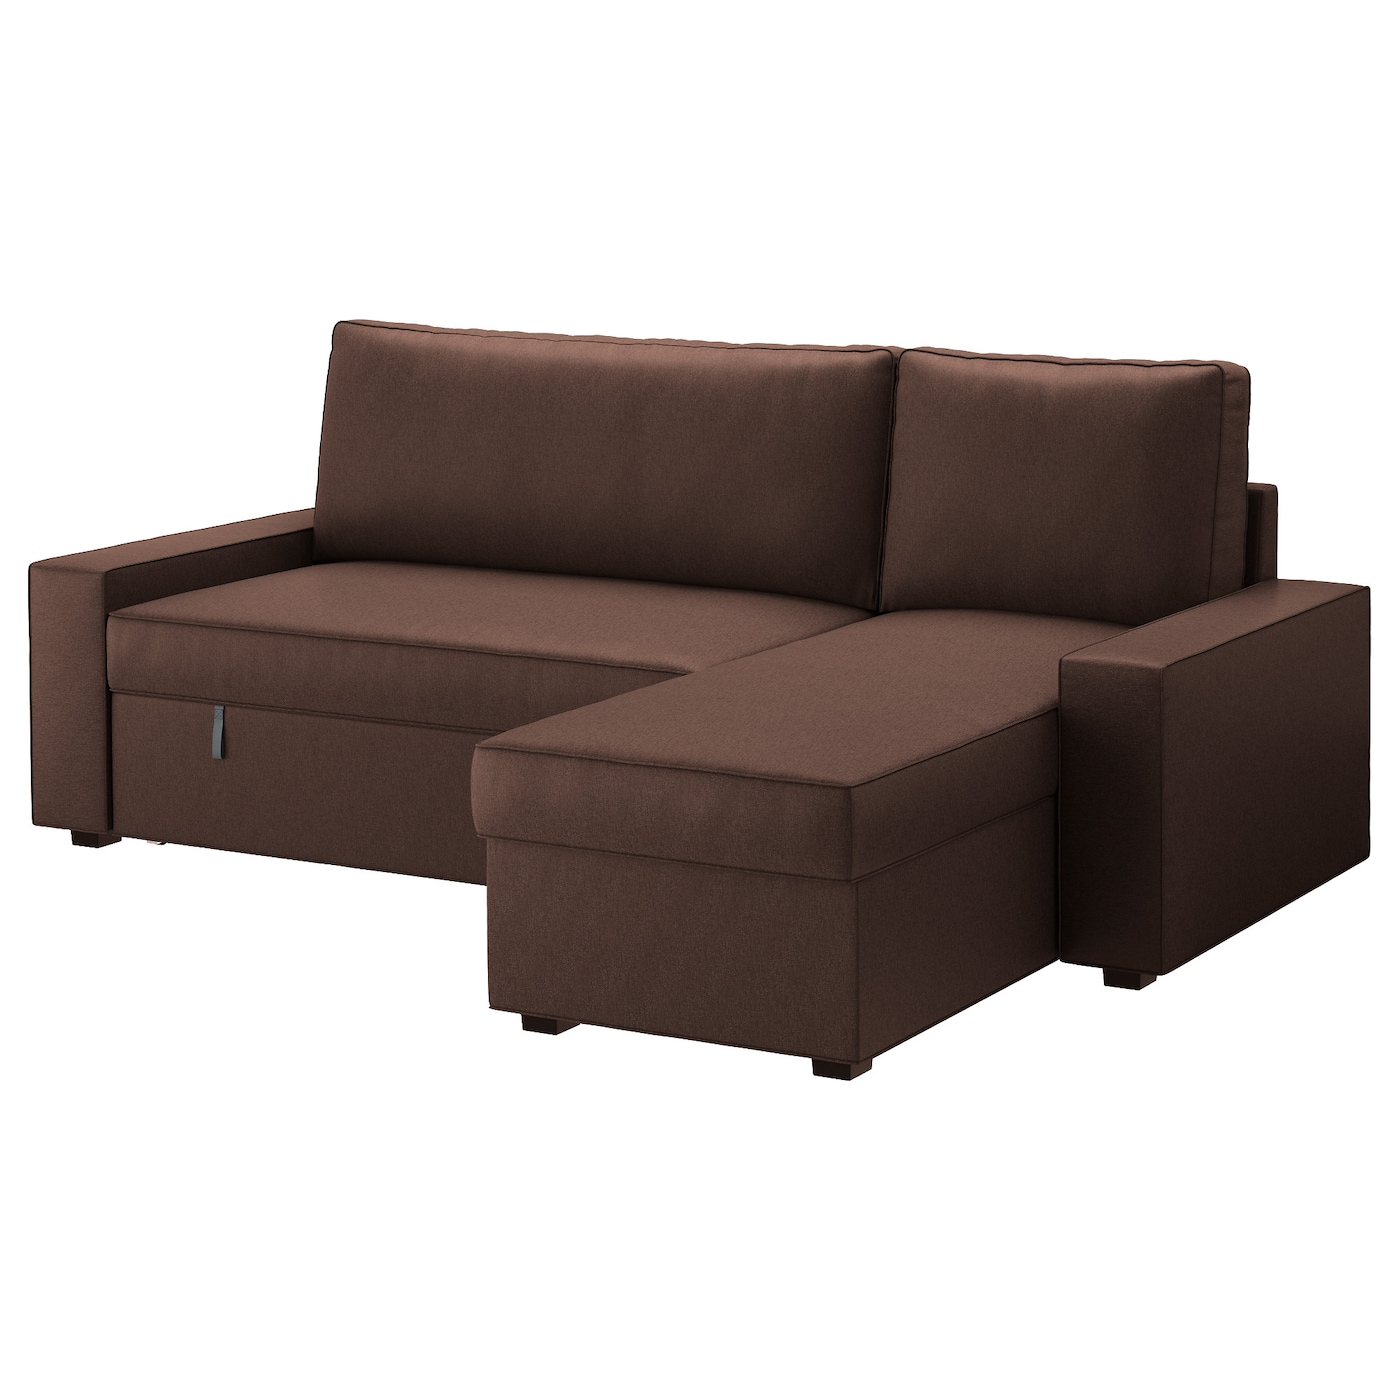 Vilasund sofa bed with chaise longue borred dark brown ikea - Chaise longue jardin ikea ...